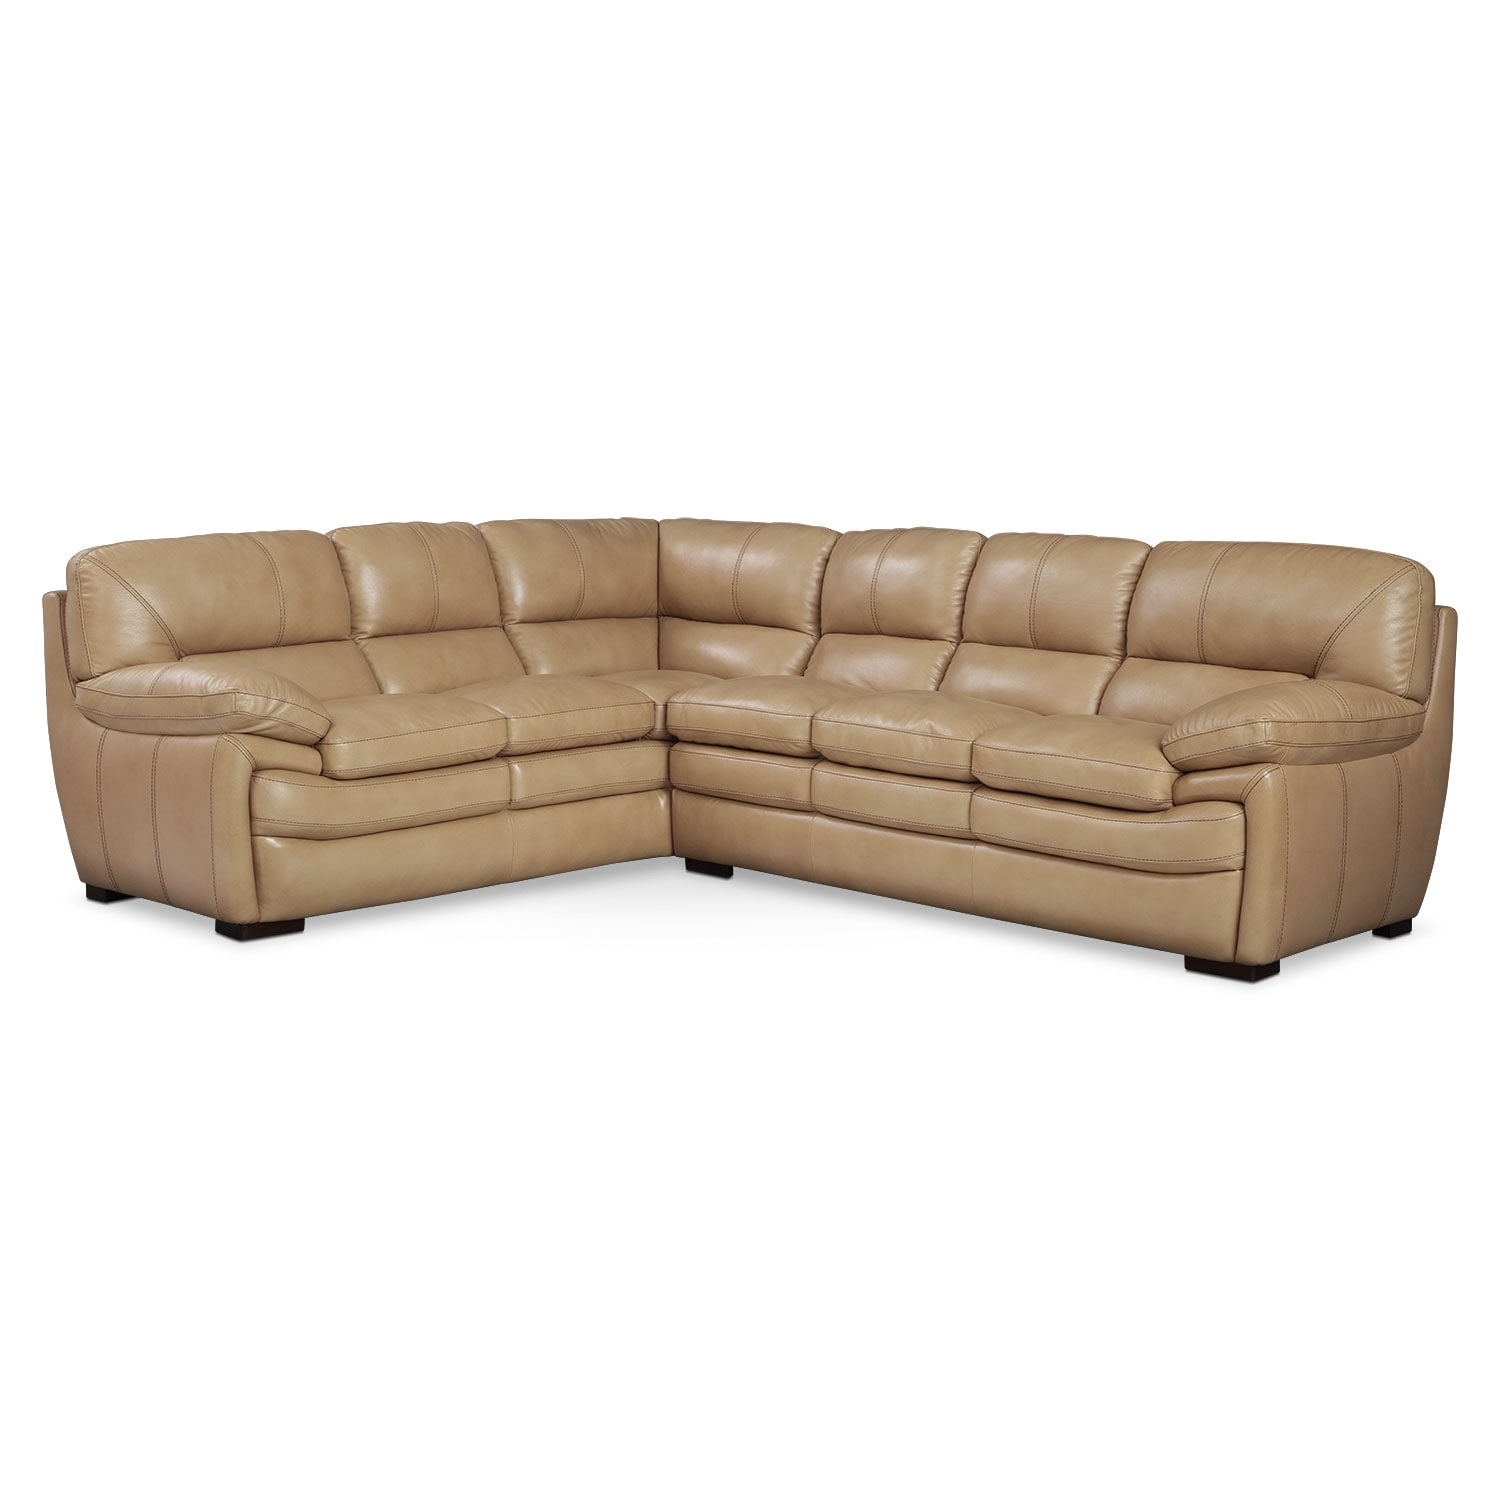 Living Room Furniture - Peyton Taupe 2 Pc. Sectional